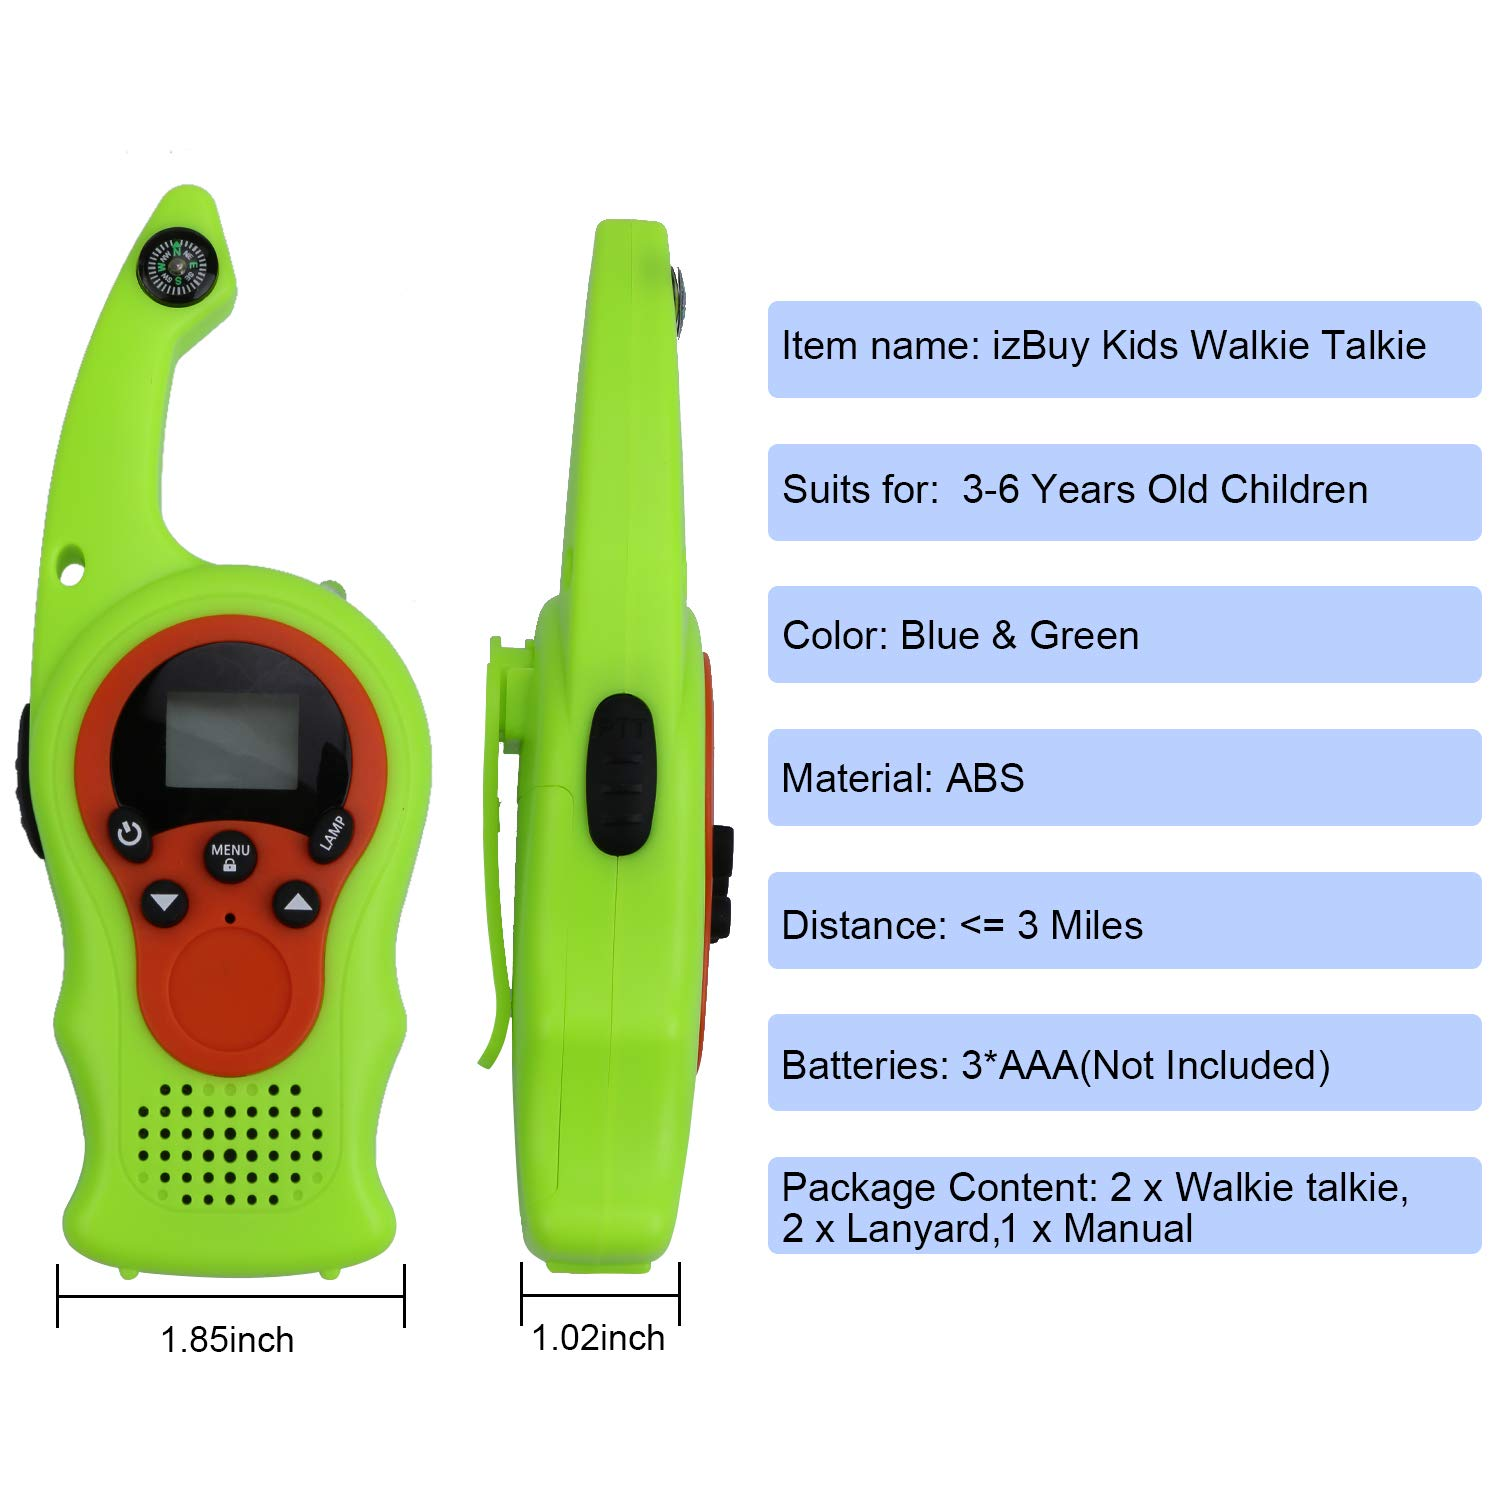 izBuy Kids Walkie Talkies, 22 Channels 3 Miles Range with Compass Flashlight, 2 Way Radio Walkie Talkie for Boys and Girls, 2 Pack Walkie Talkies with Lanyards, Ideal Outdoor Indoor Partner by izBuy (Image #3)